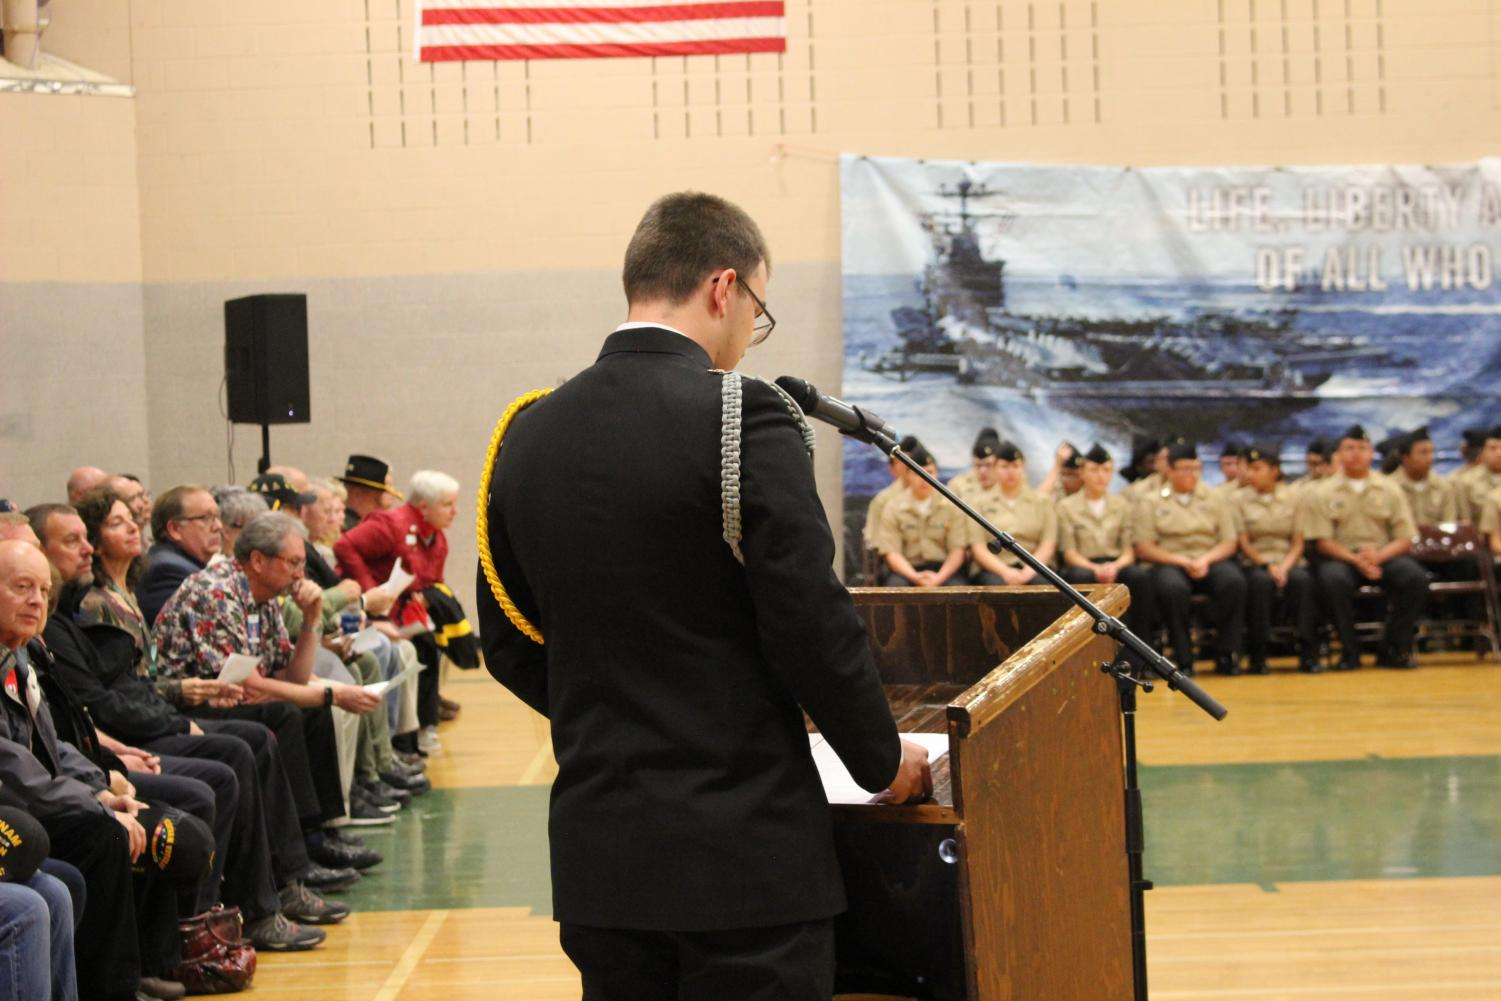 JROTC Cadet Cody Jackson presenting his speech at the assembly.